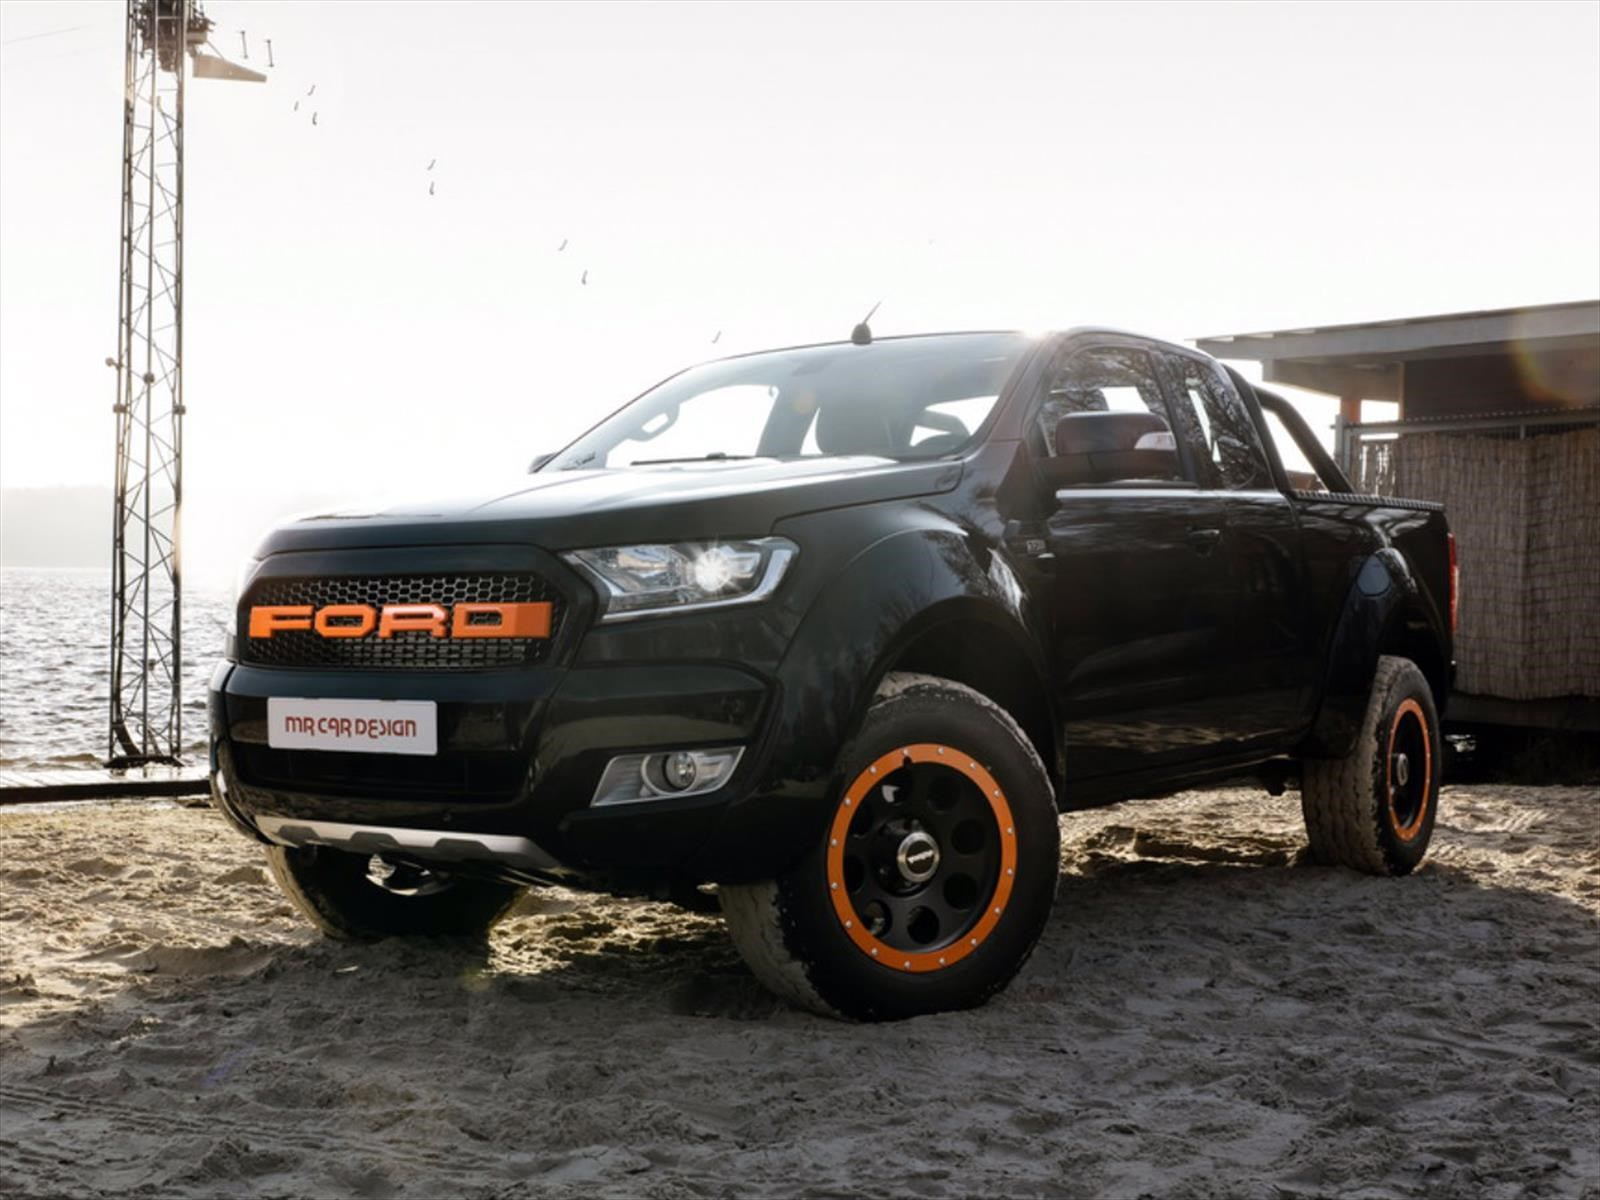 ford ranger por mr car design todo el sello raptor. Black Bedroom Furniture Sets. Home Design Ideas